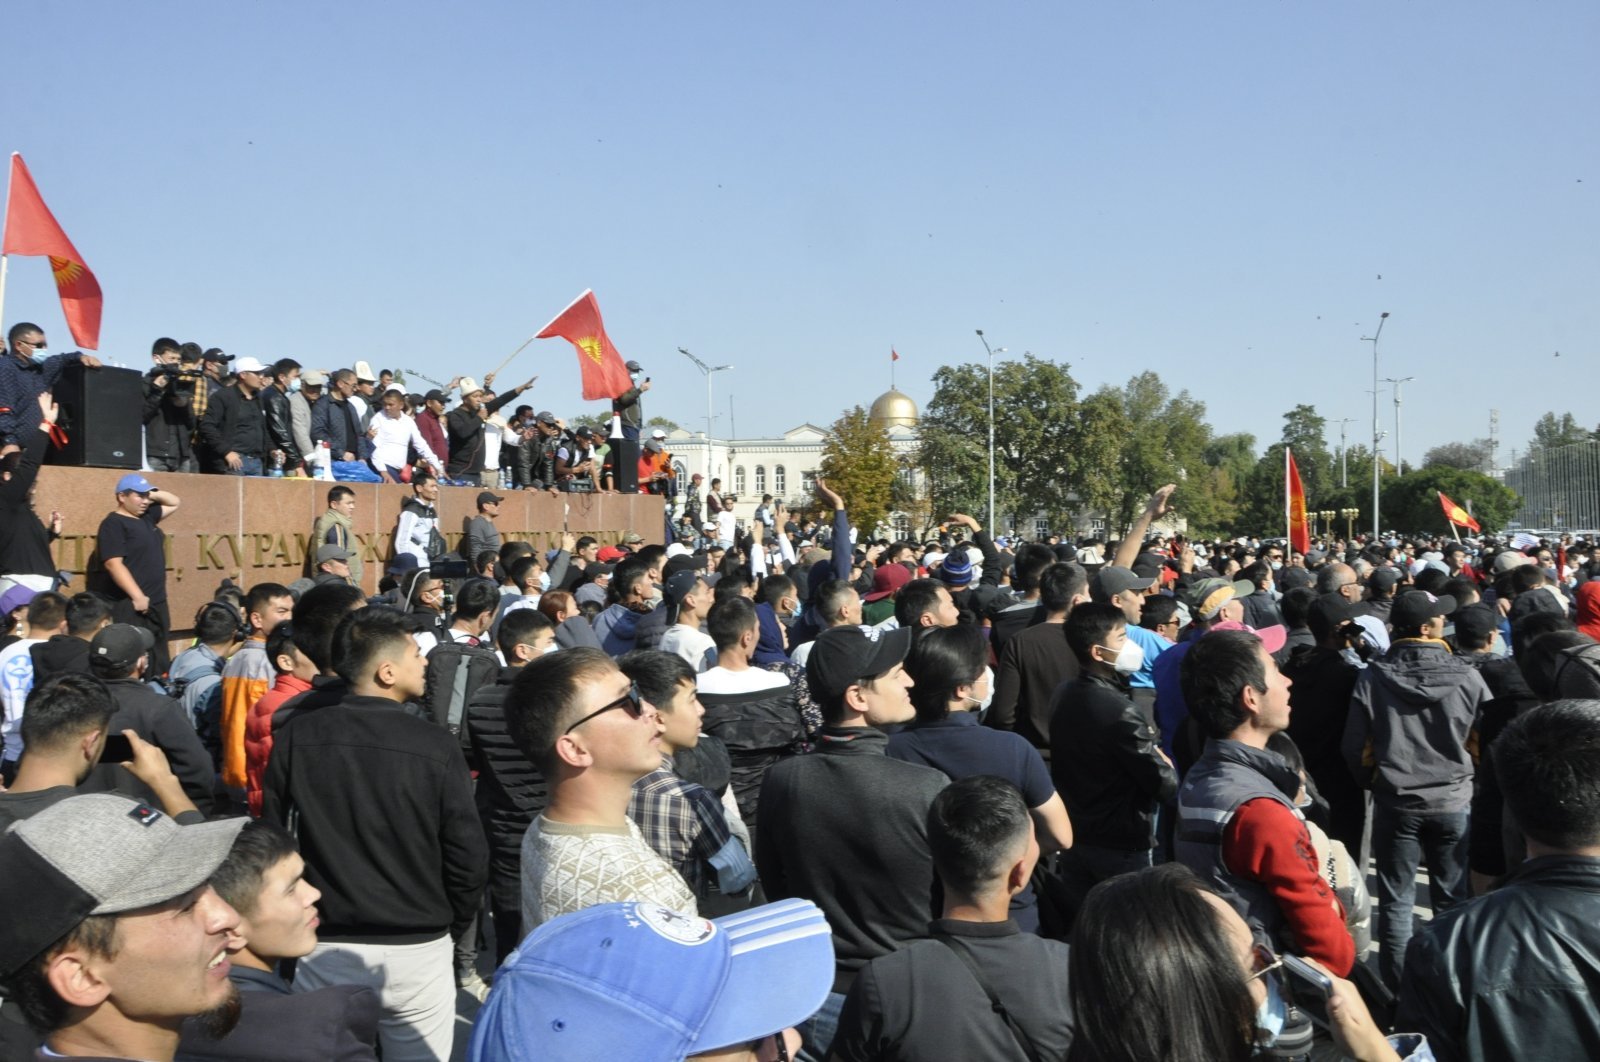 Thousands gathered in Kyrgyzstan's capital Bishkek Monday to protest the results of a parliamentary ballot, Oct. 5, 2020. (AA Photo)